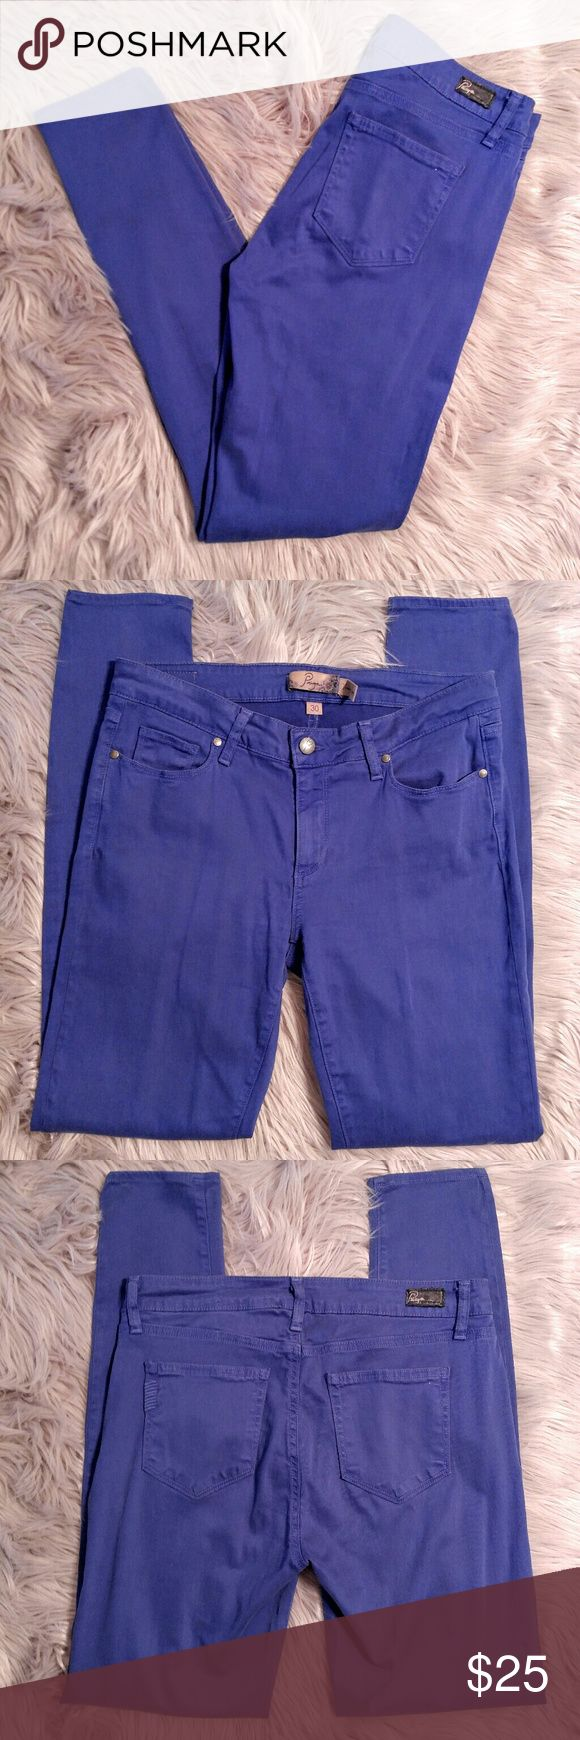 "Paige Verdugo Bright Blue Legging Pants (Anthro) Paige Verdugo Bright Blue Legging Pants by Anthropologie  In EUC with no major signs of wear. Size 30 with a 15"" waist and 31"" inseam. 65% lyocell 33% cotton 2% elastine. Paige Jeans Pants Leggings"